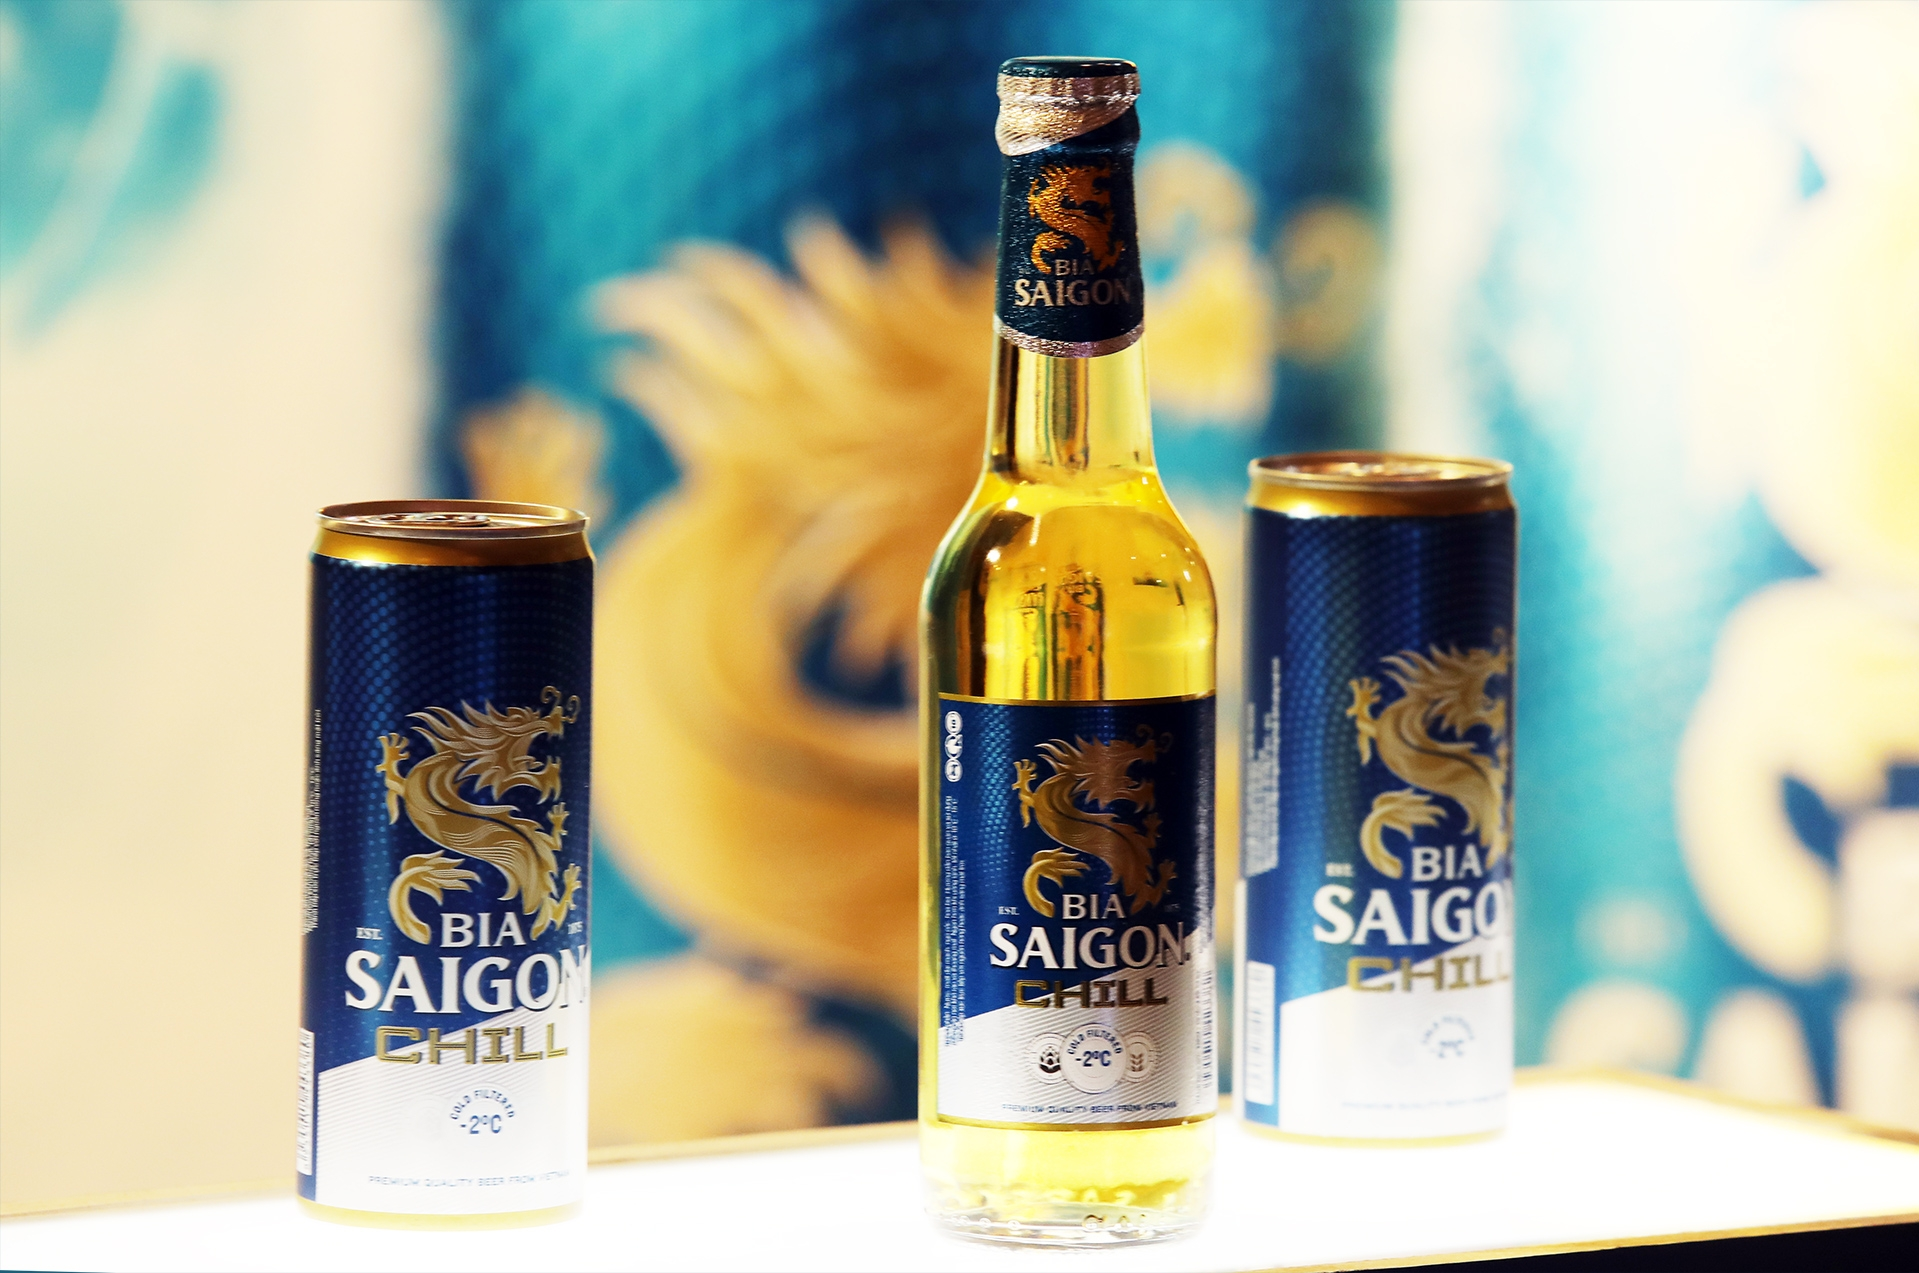 sabeco clears house at international beer awards to take local brand to the world